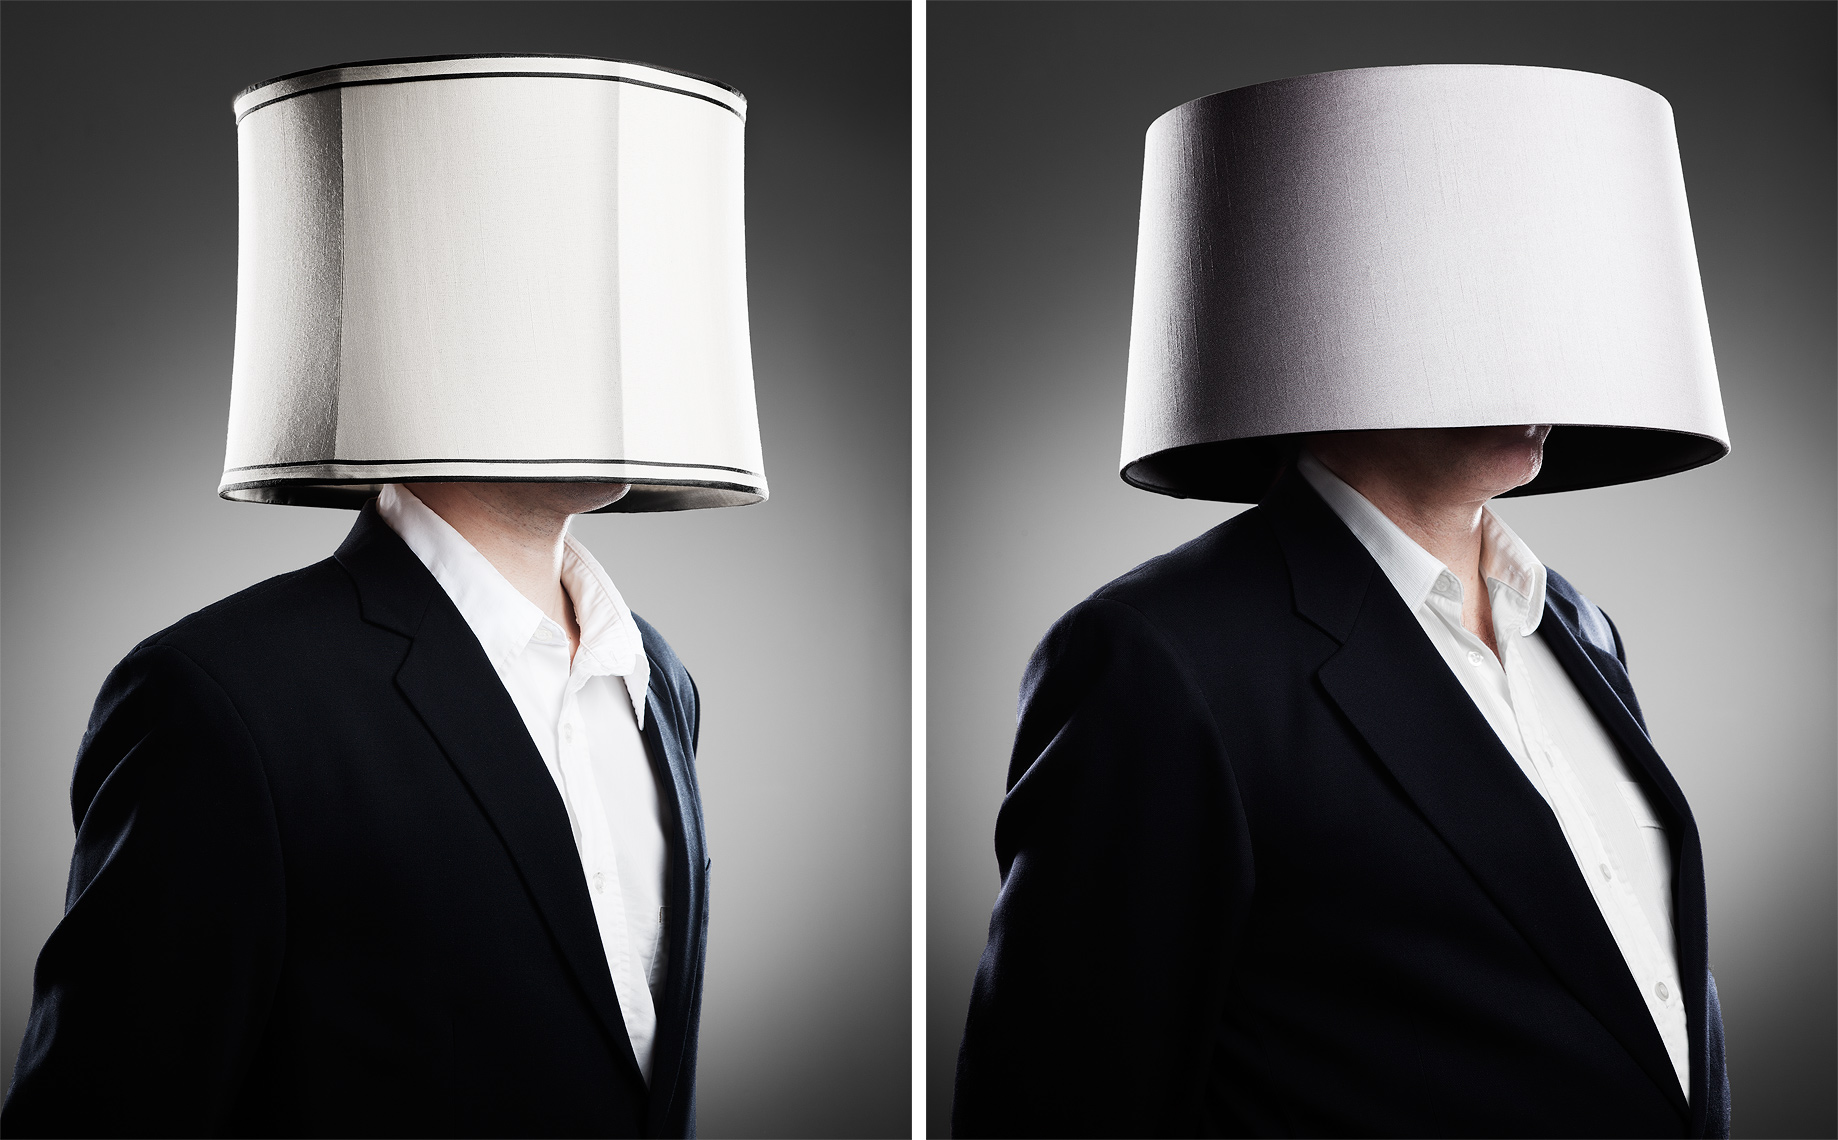 Lampheads - Conceptual Photography